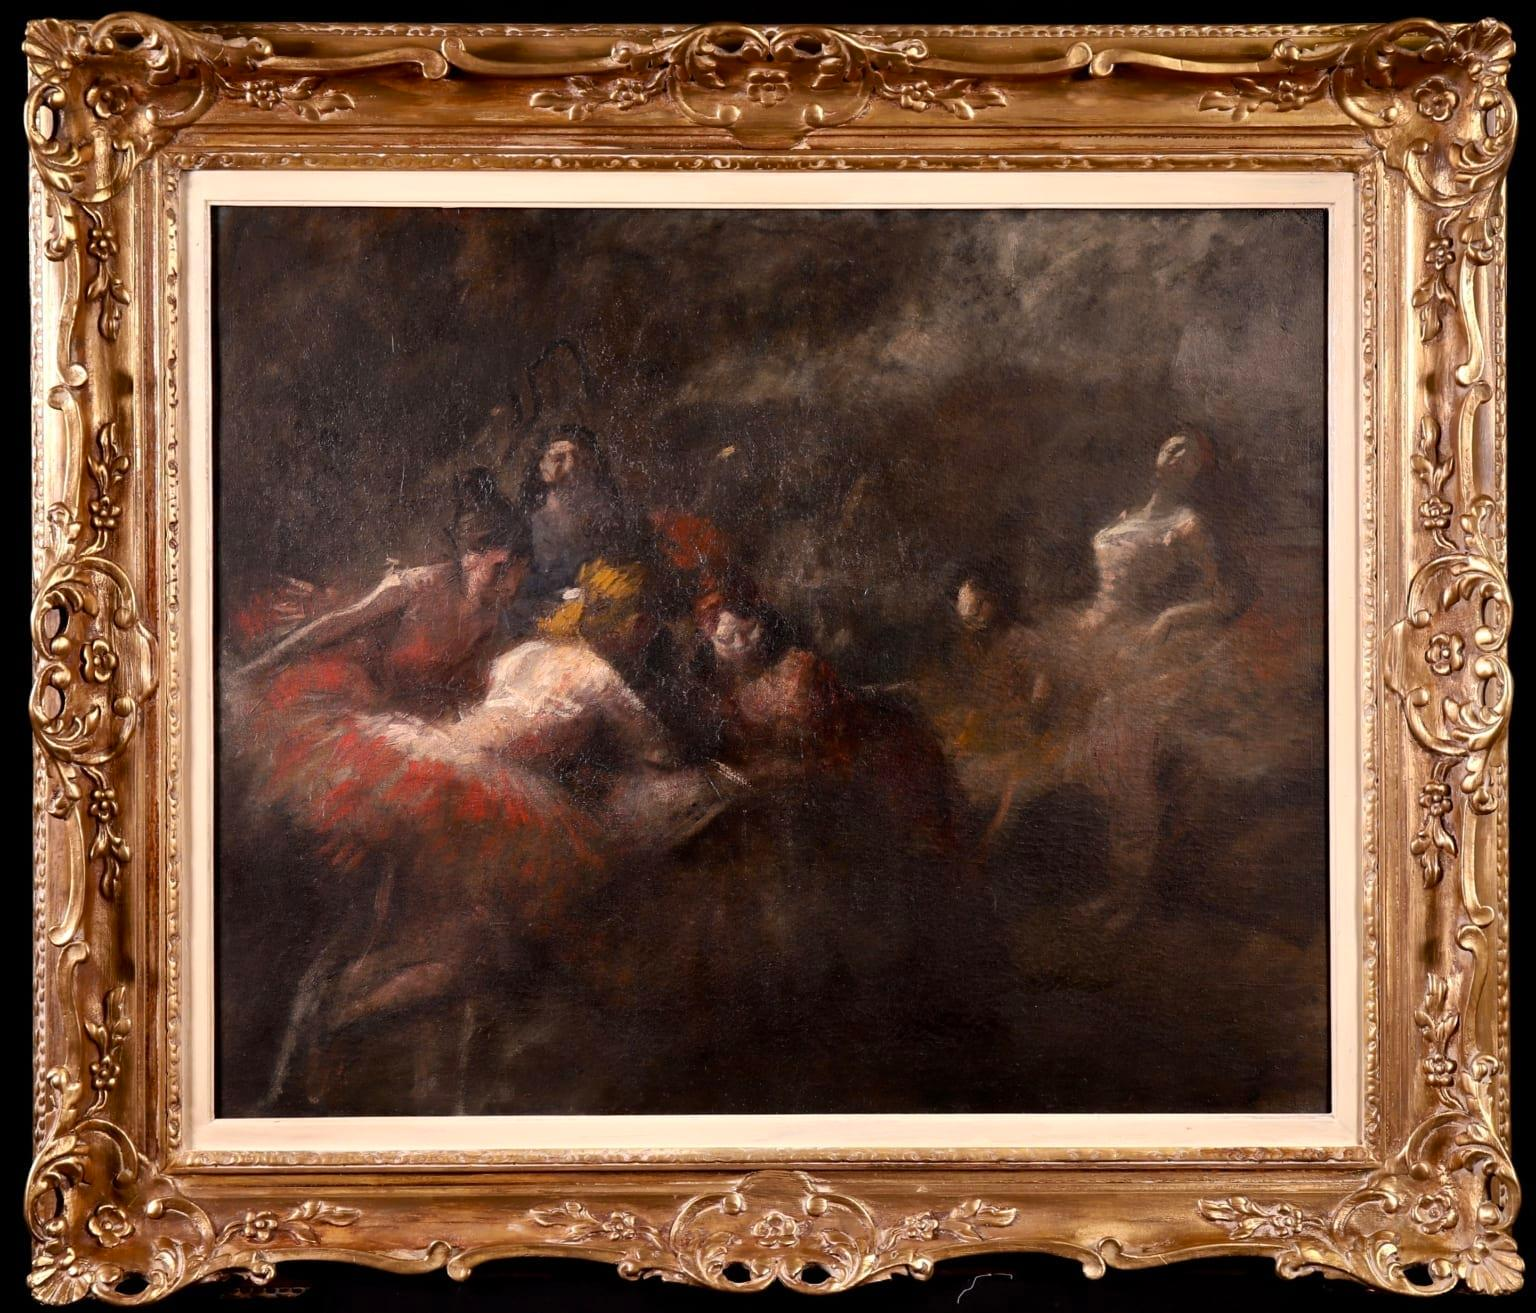 Dancers at Opera - Impressionist Oil, Figures in Interior by Jean Louis Forain